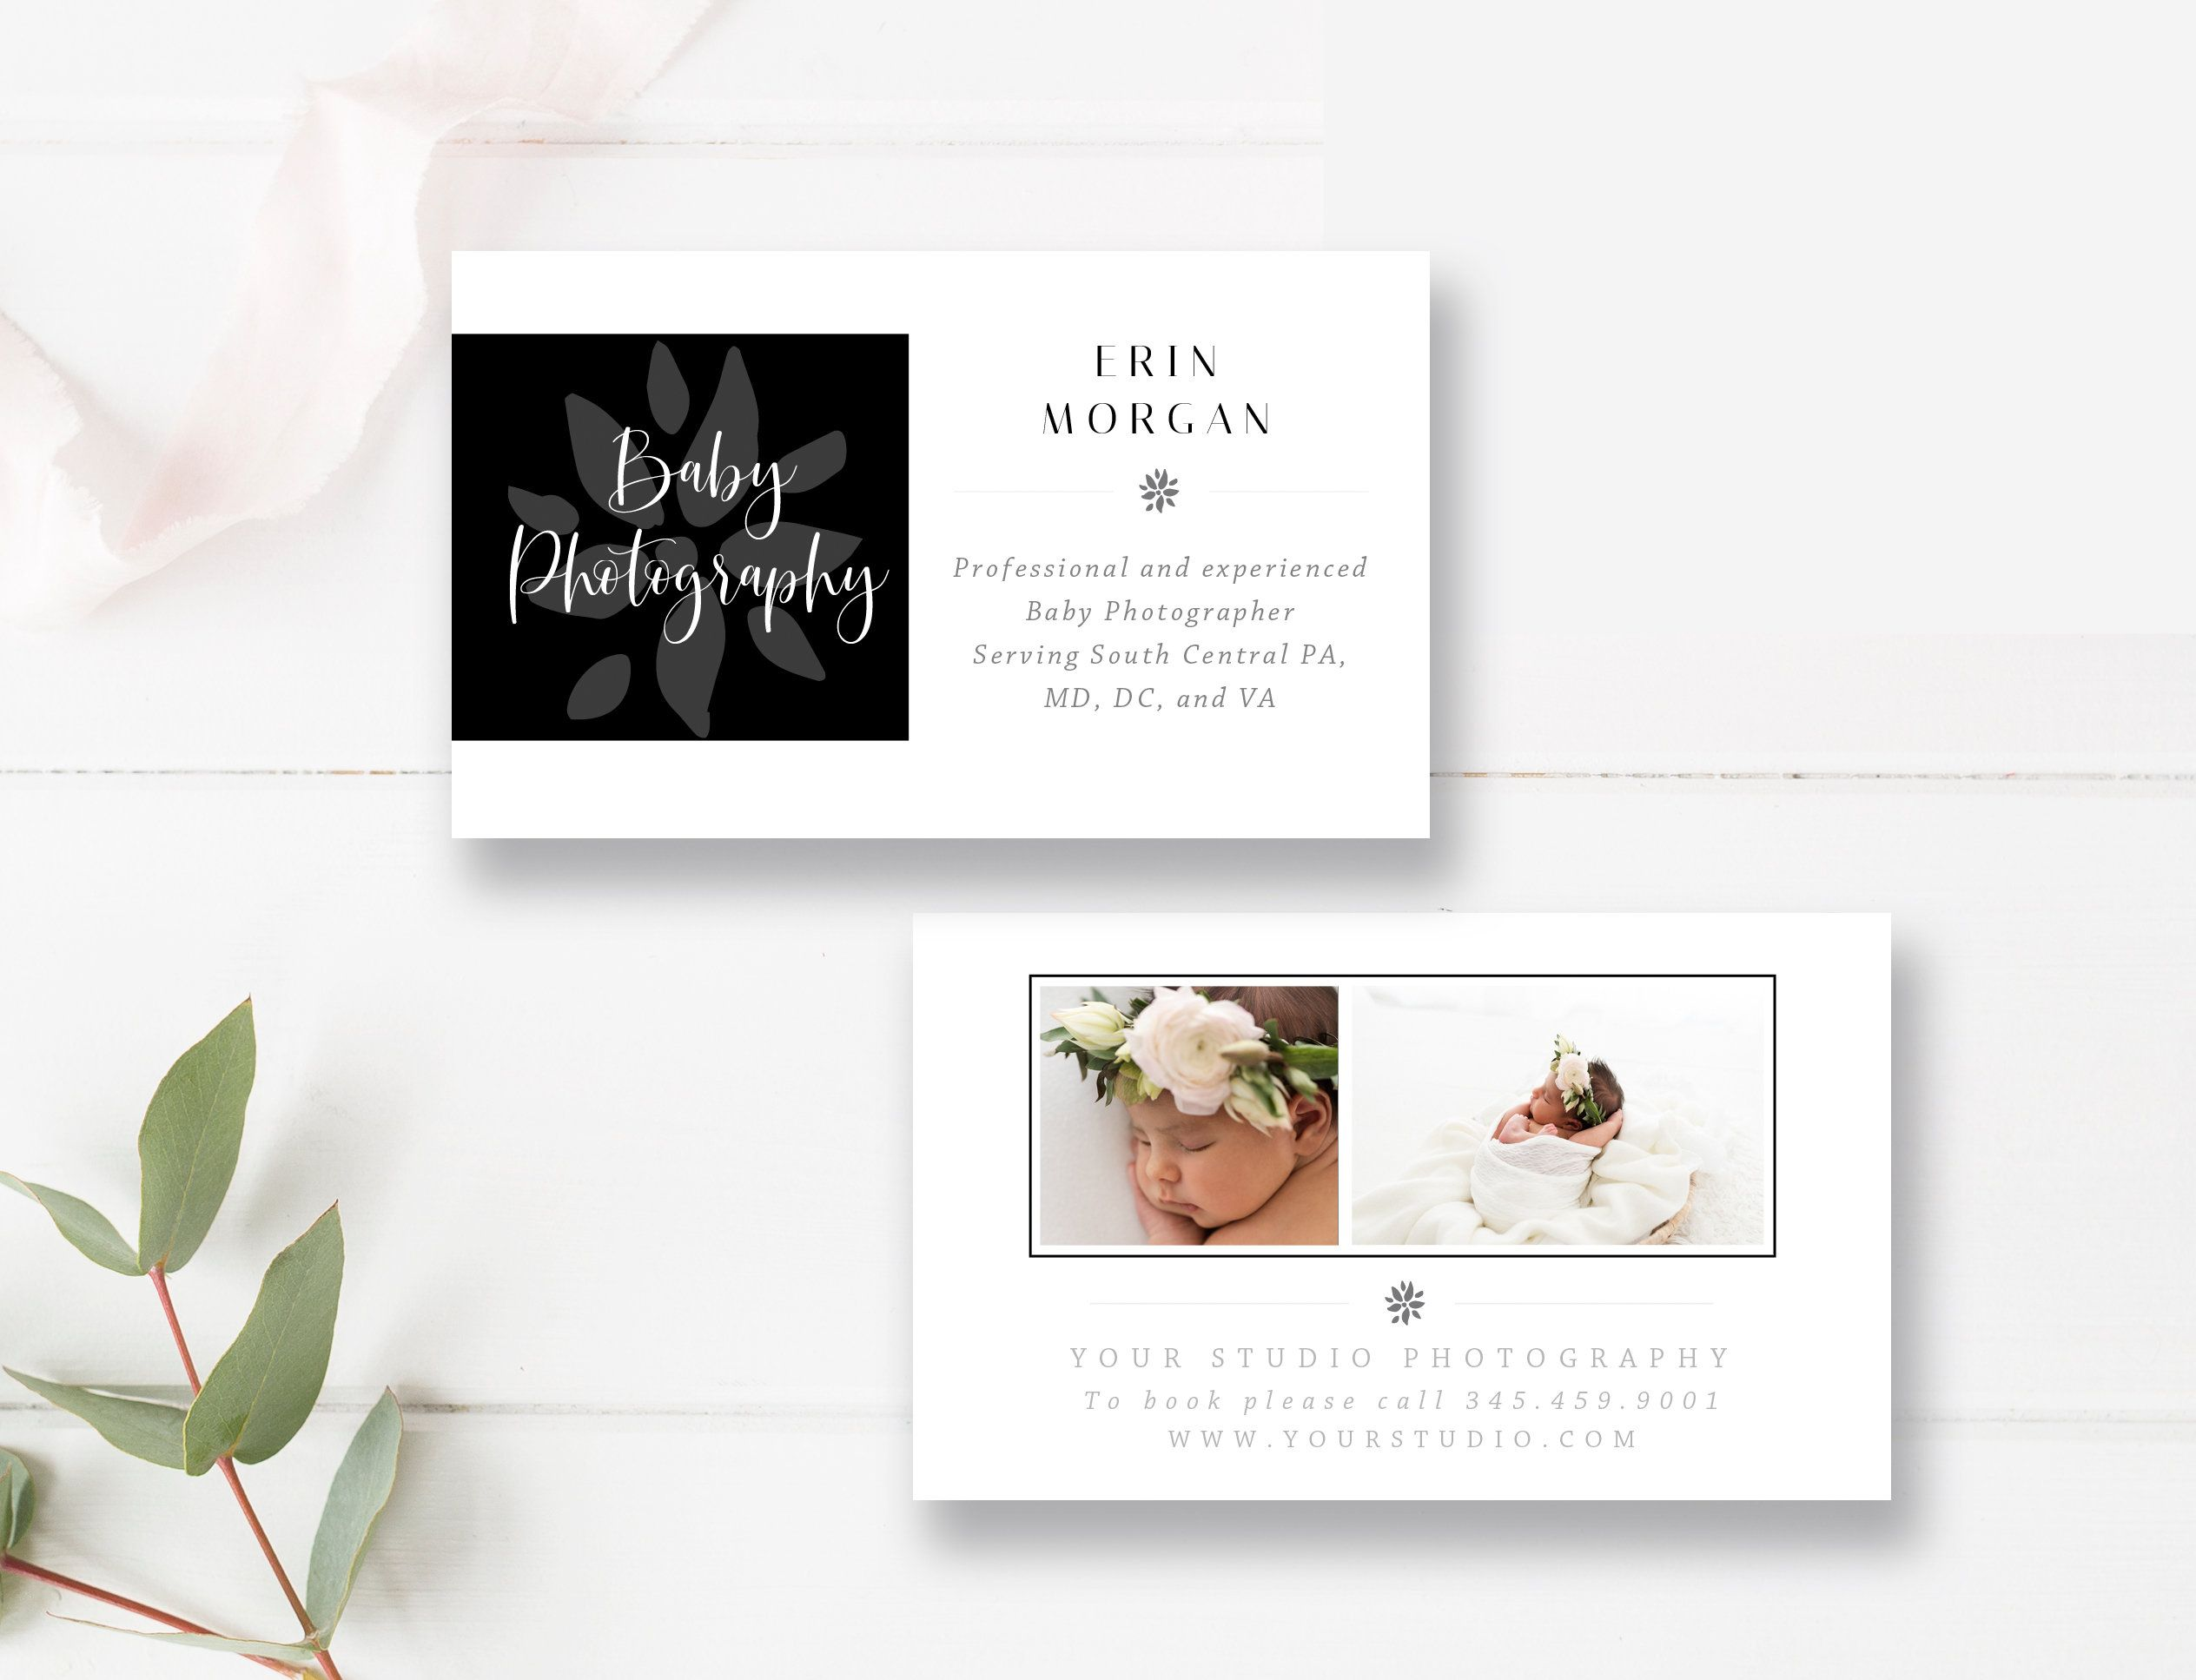 Instant Download Photography Business Card Template Psd Etsy In 2021 Photography Business Cards Template Photography Business Cards Photo Marketing Templates